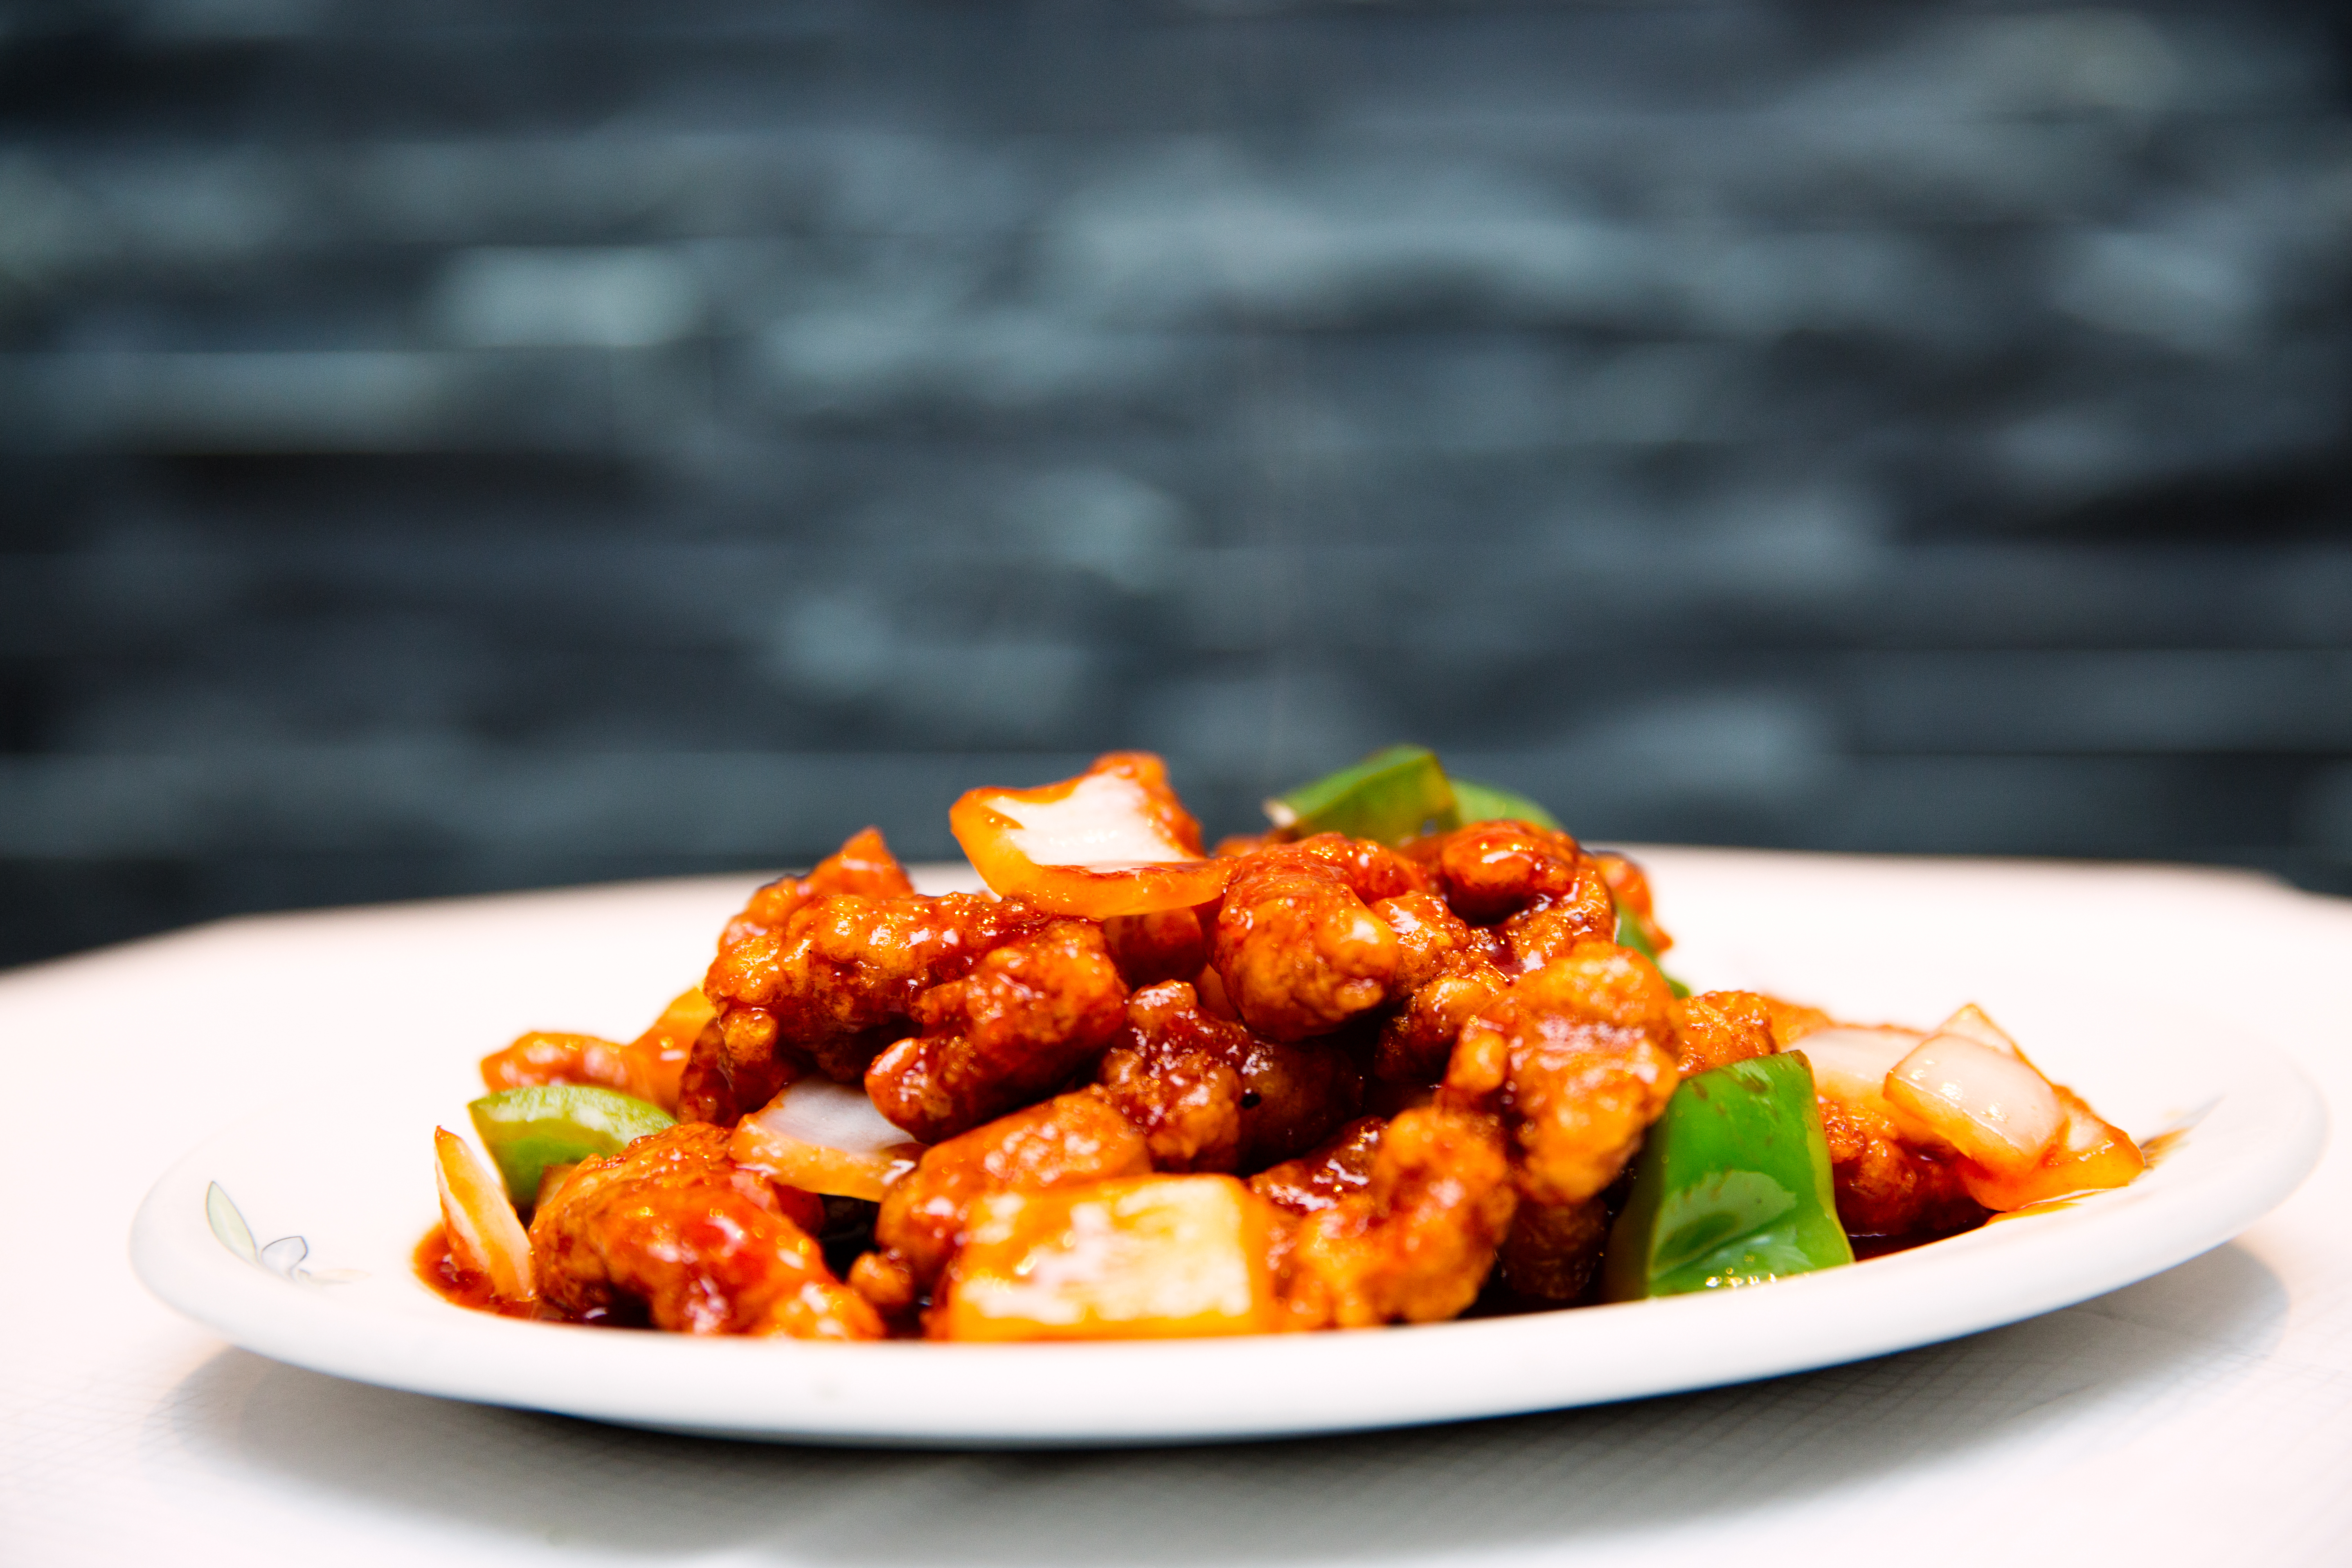 Our Signature Sweet & Sour Chicken